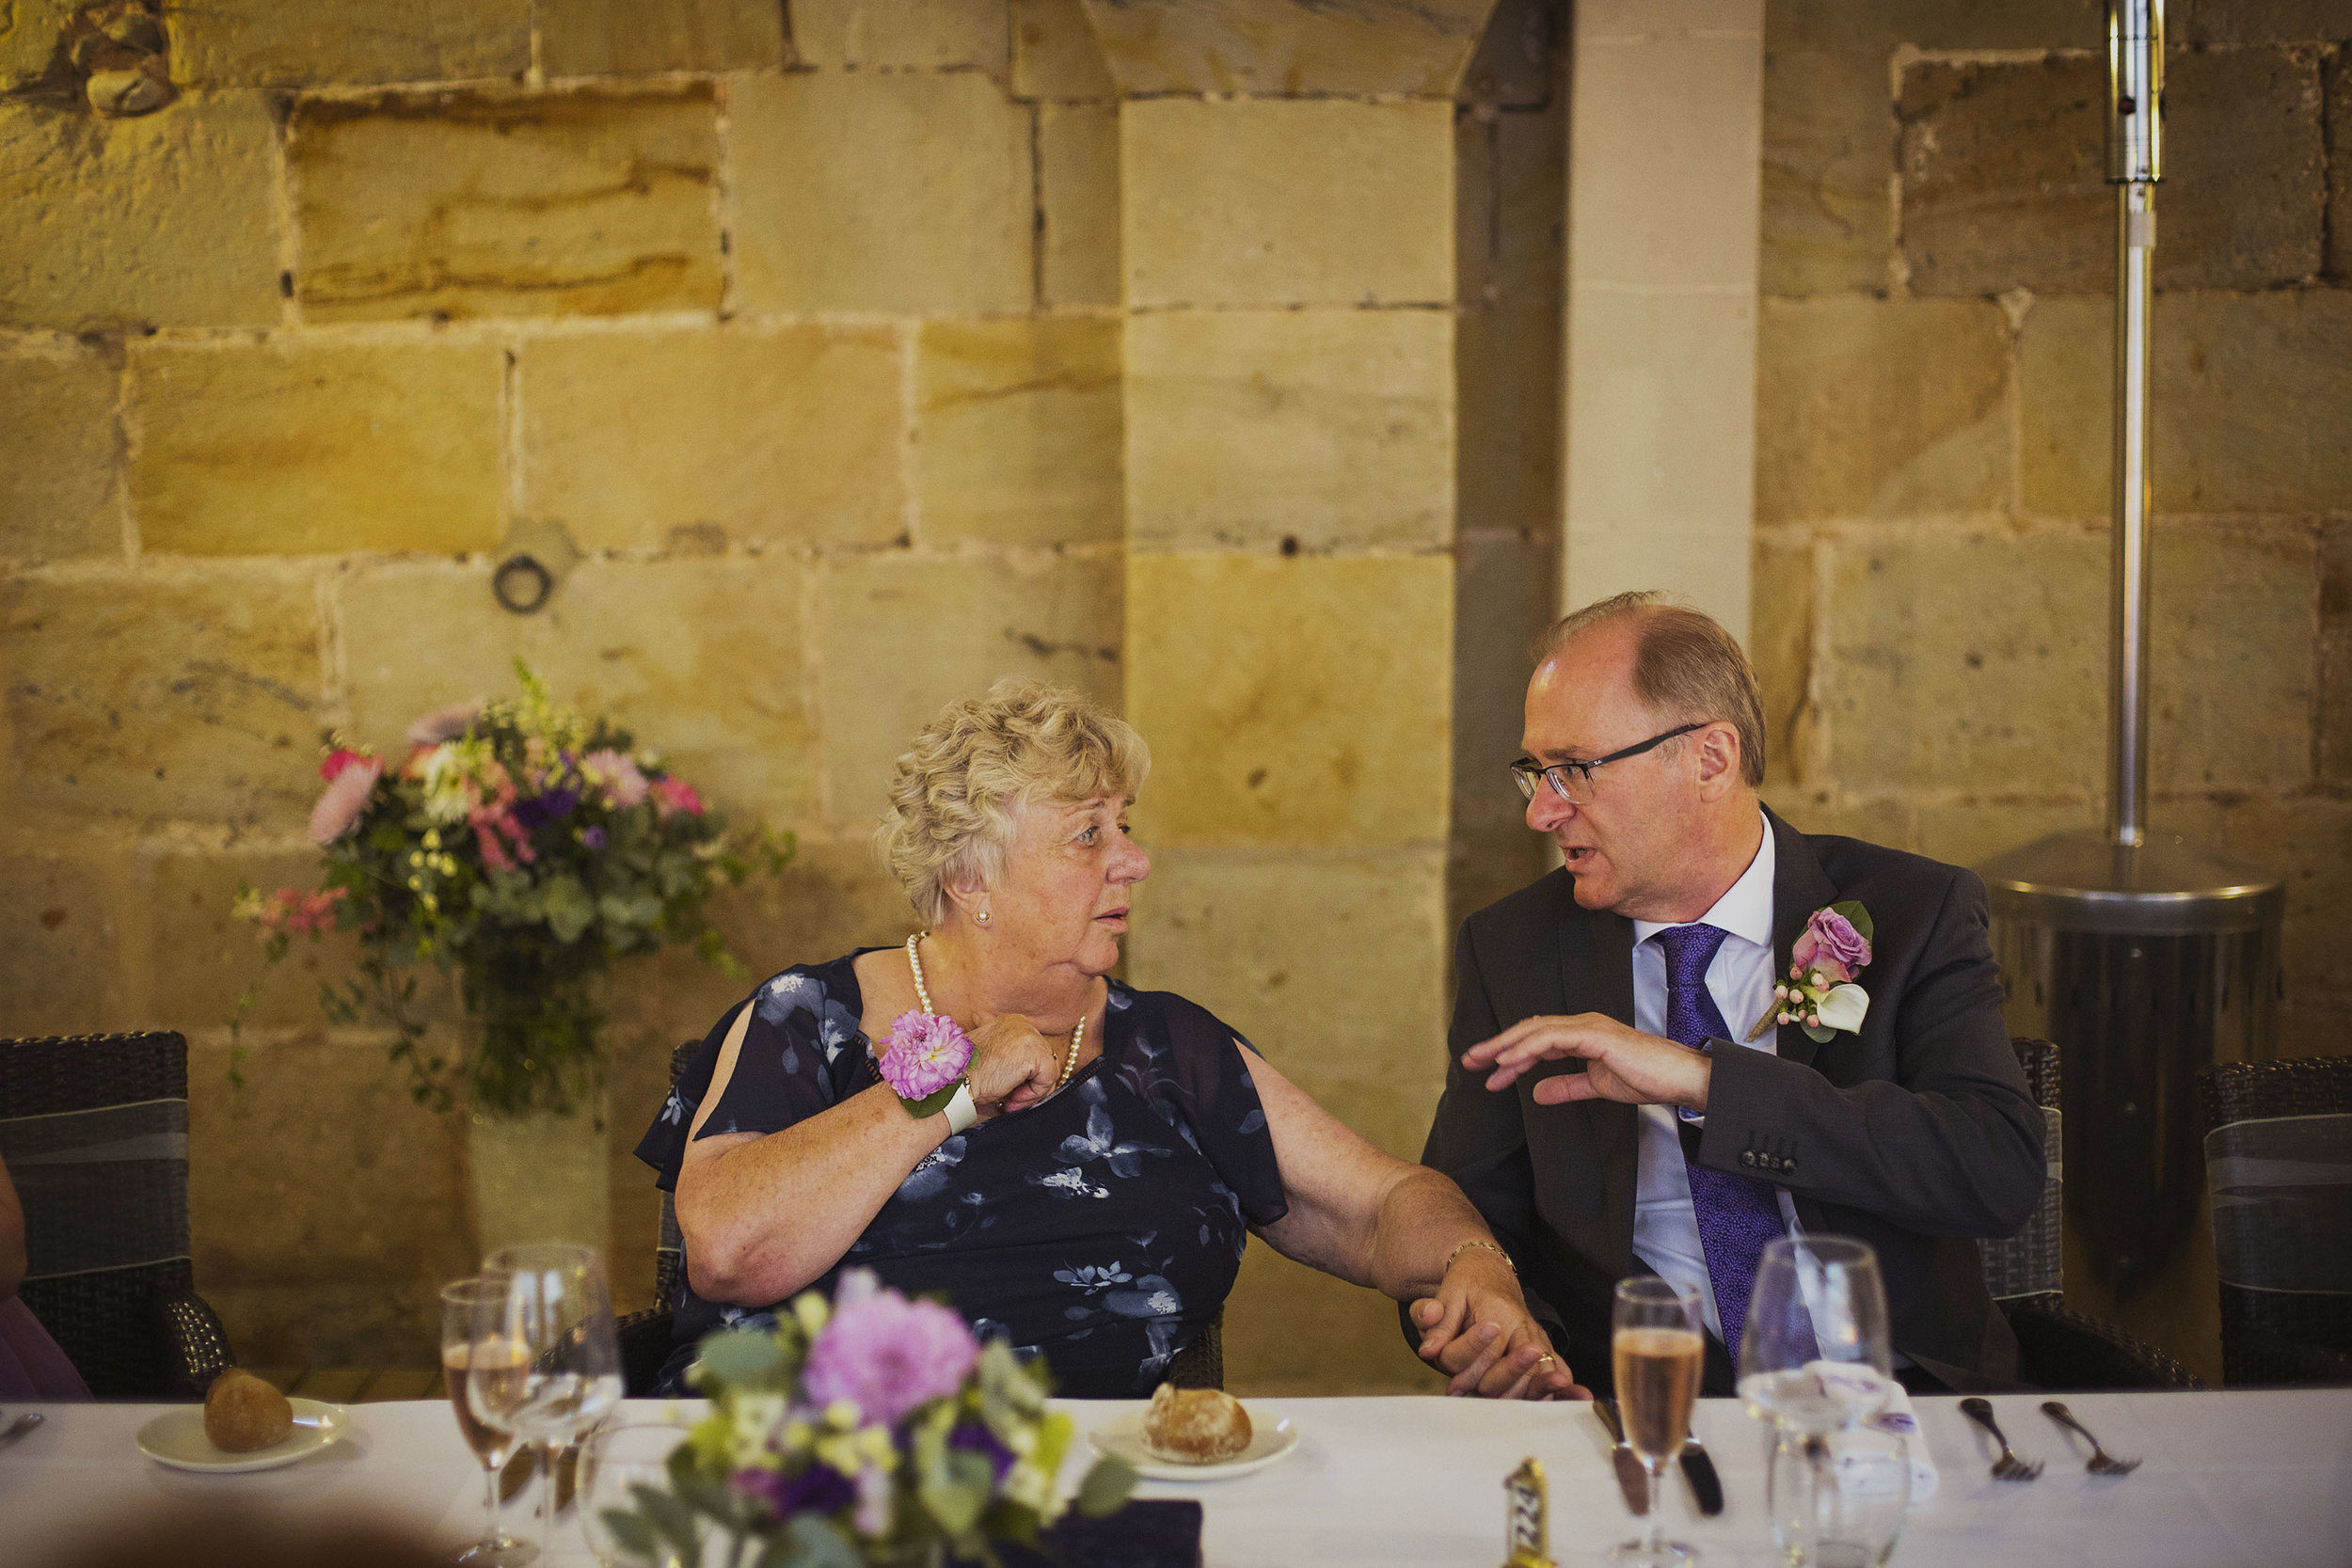 groom with mother at wedding breakfast at chateaux des ducs de joyeuses france destination wedding photography